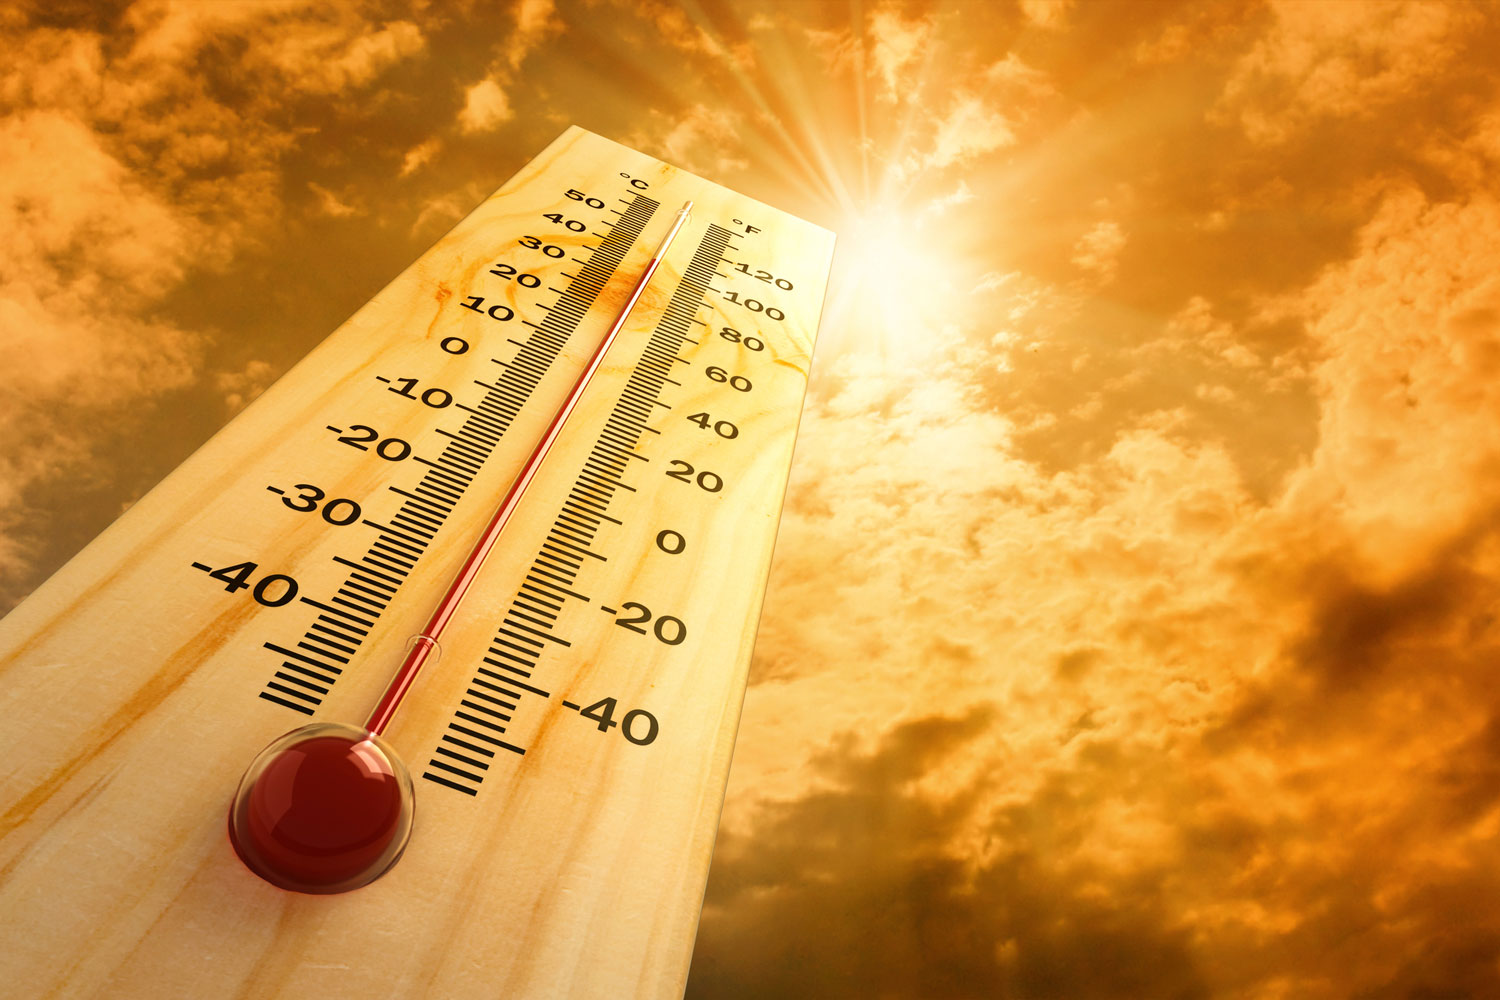 Thermometer in direct sunlight